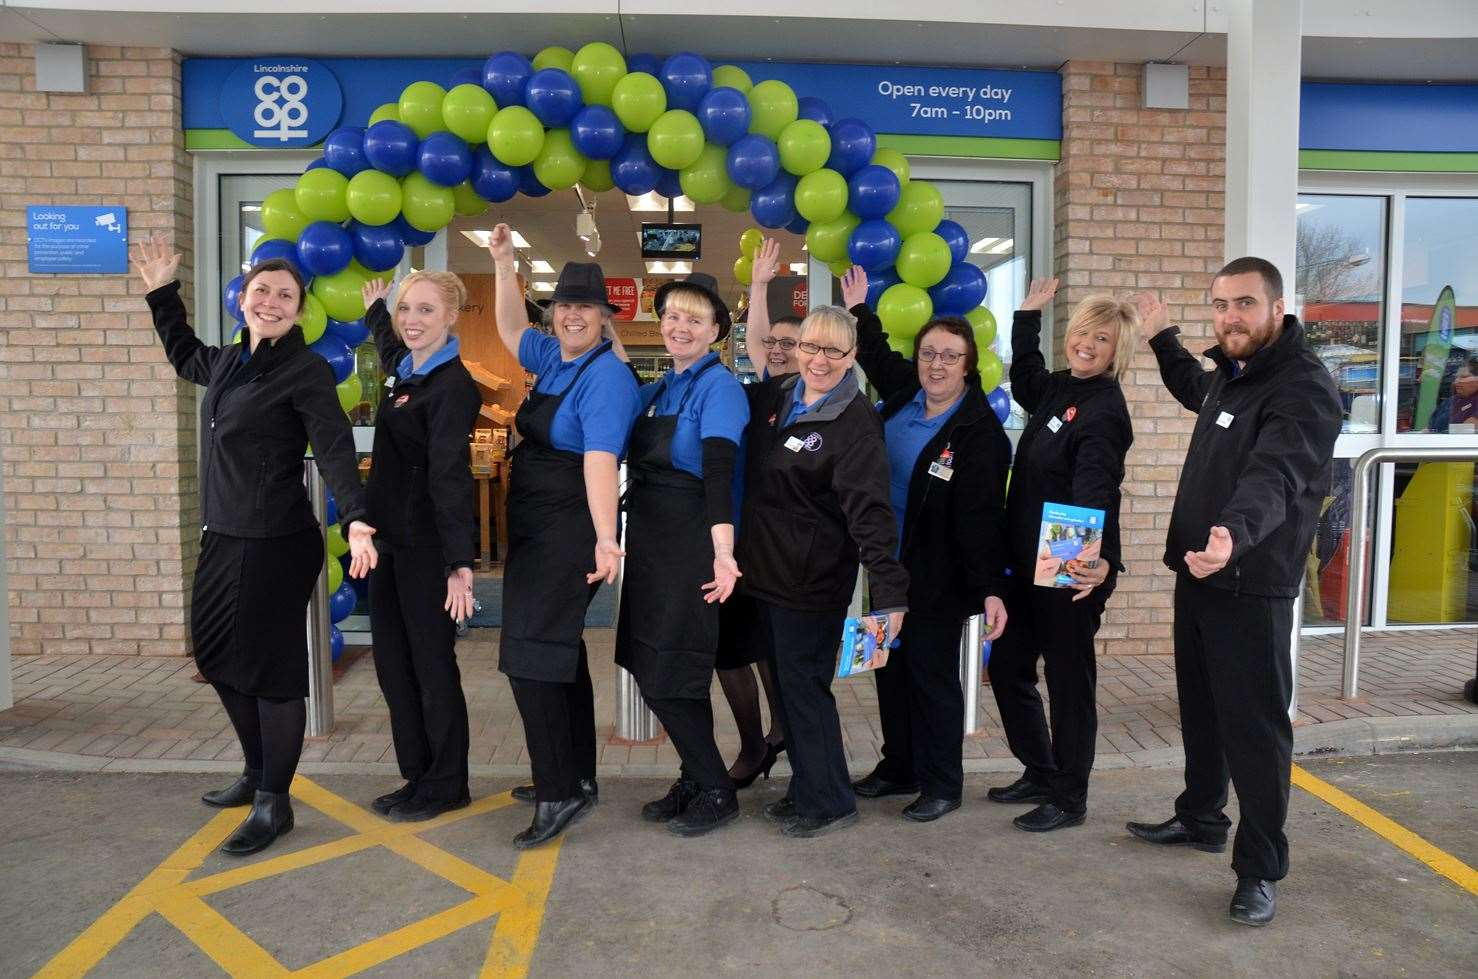 Staff celebrate the opening of the new Co-op in Whaplode, with manager Jamie Taylor on the far right.